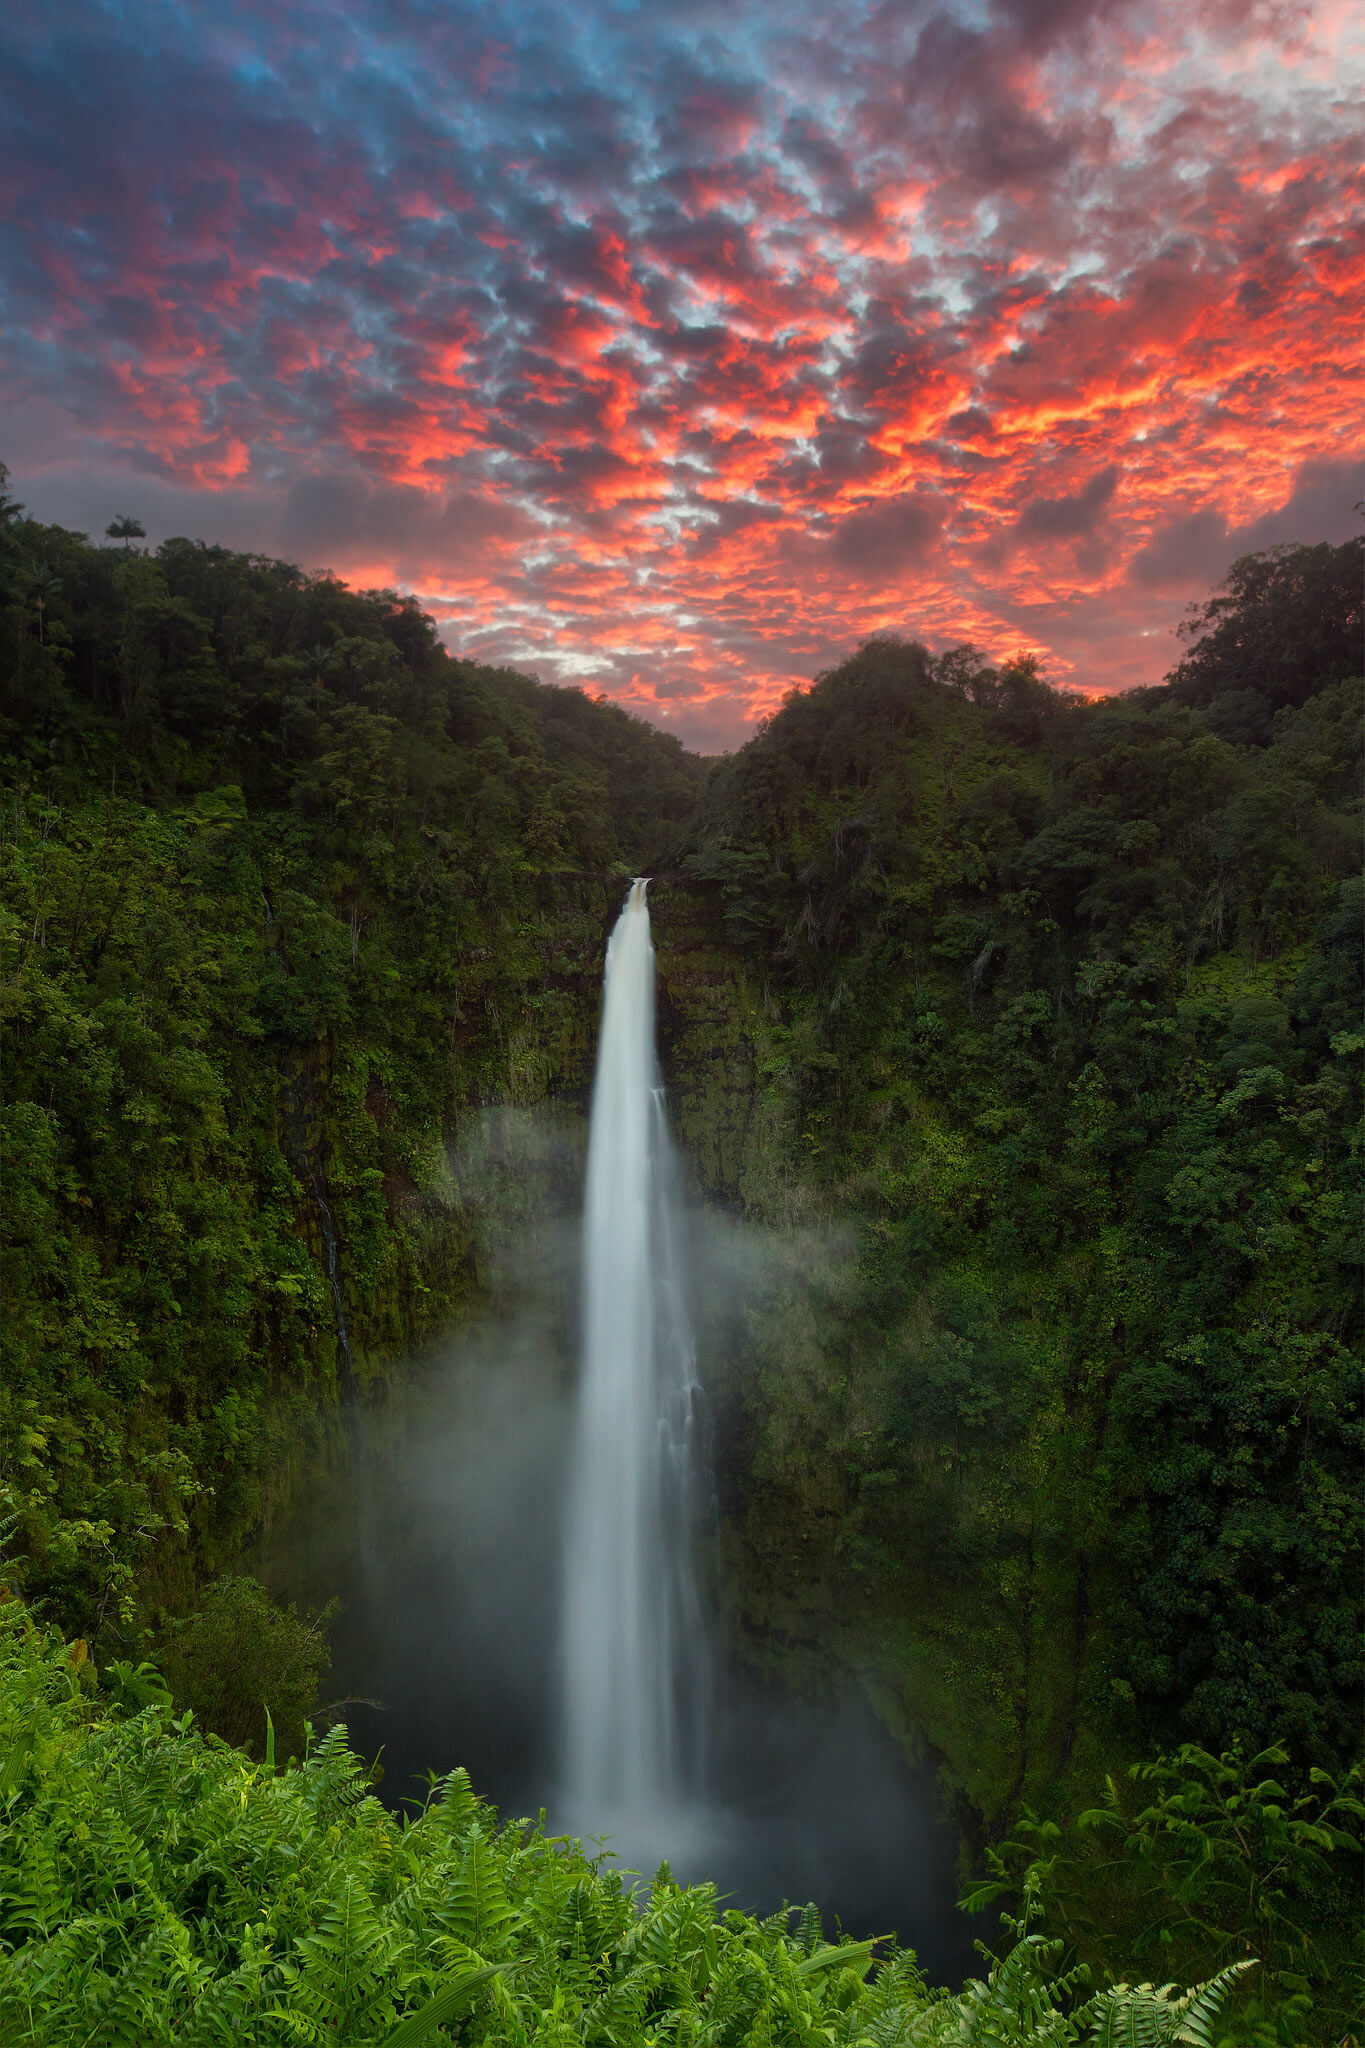 Akaka Falls is a waterfall that stands 422 feet tall, located on the east side of the Big Island. In this image, I captured the...